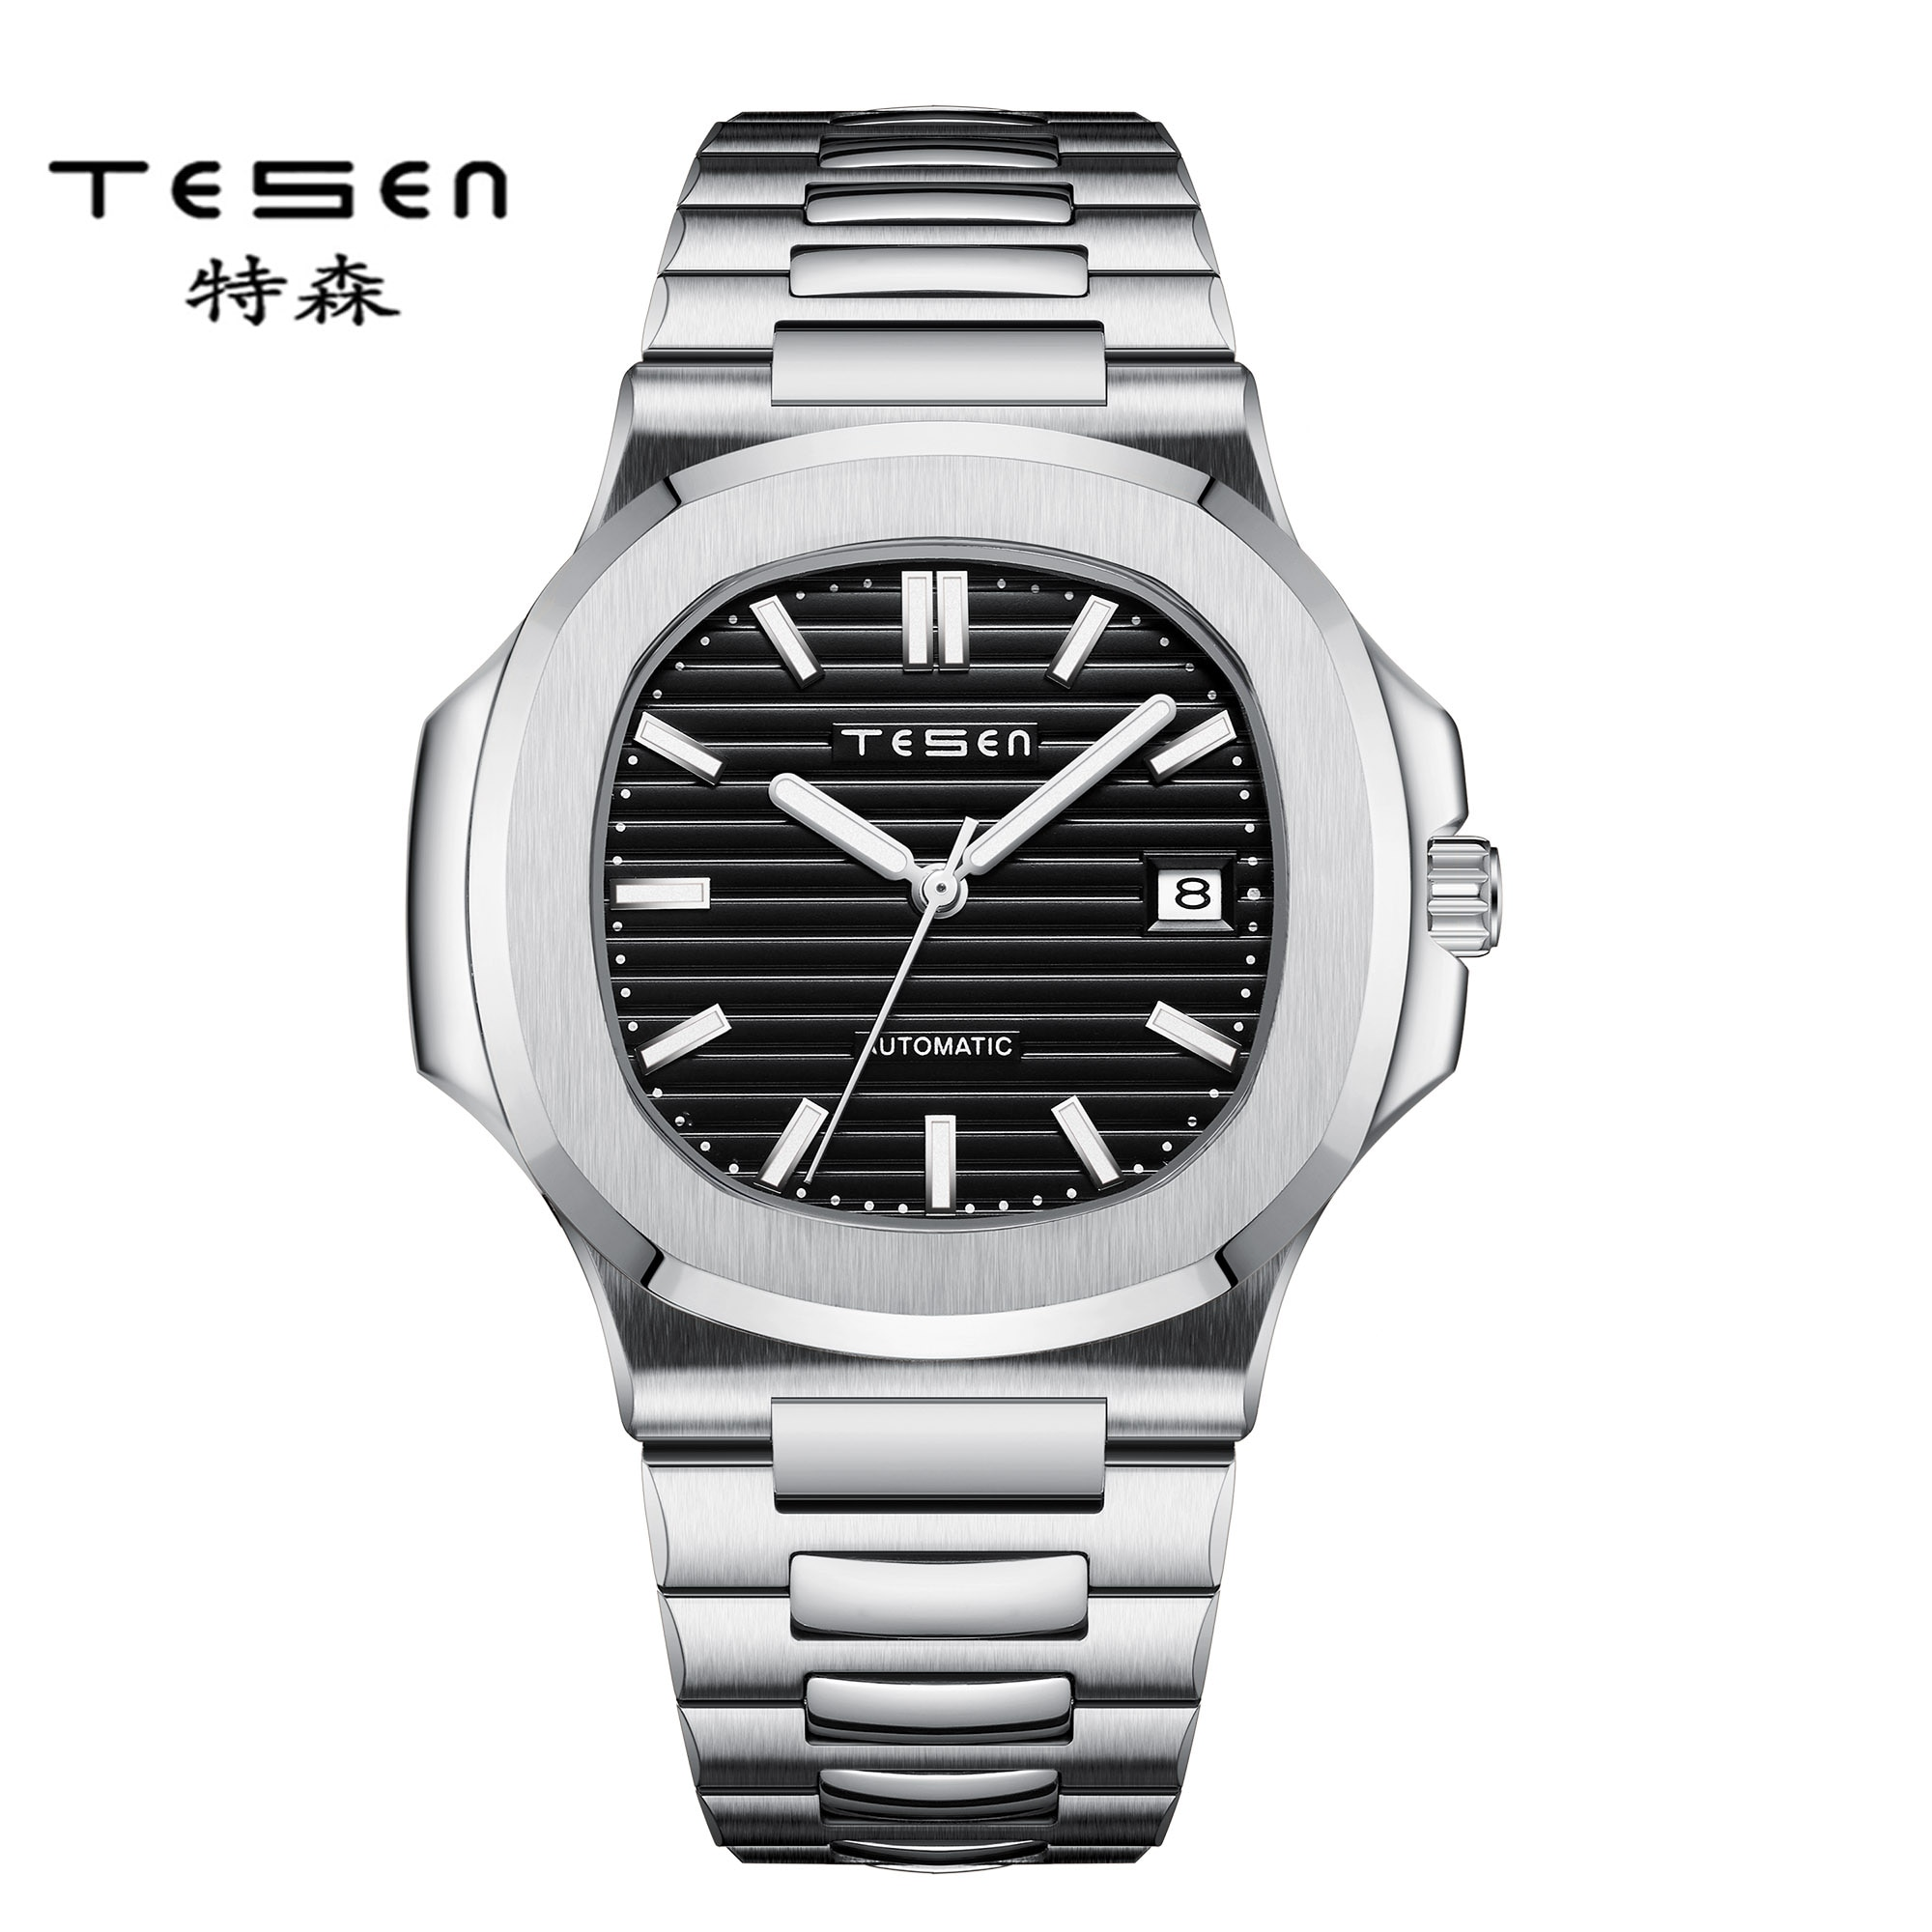 2021 New Fashion Men's Watch Stainless Steel Top Brand Luxury Waterproof Sports Chronograph Automatic Mechanical Men's Relogio enlarge